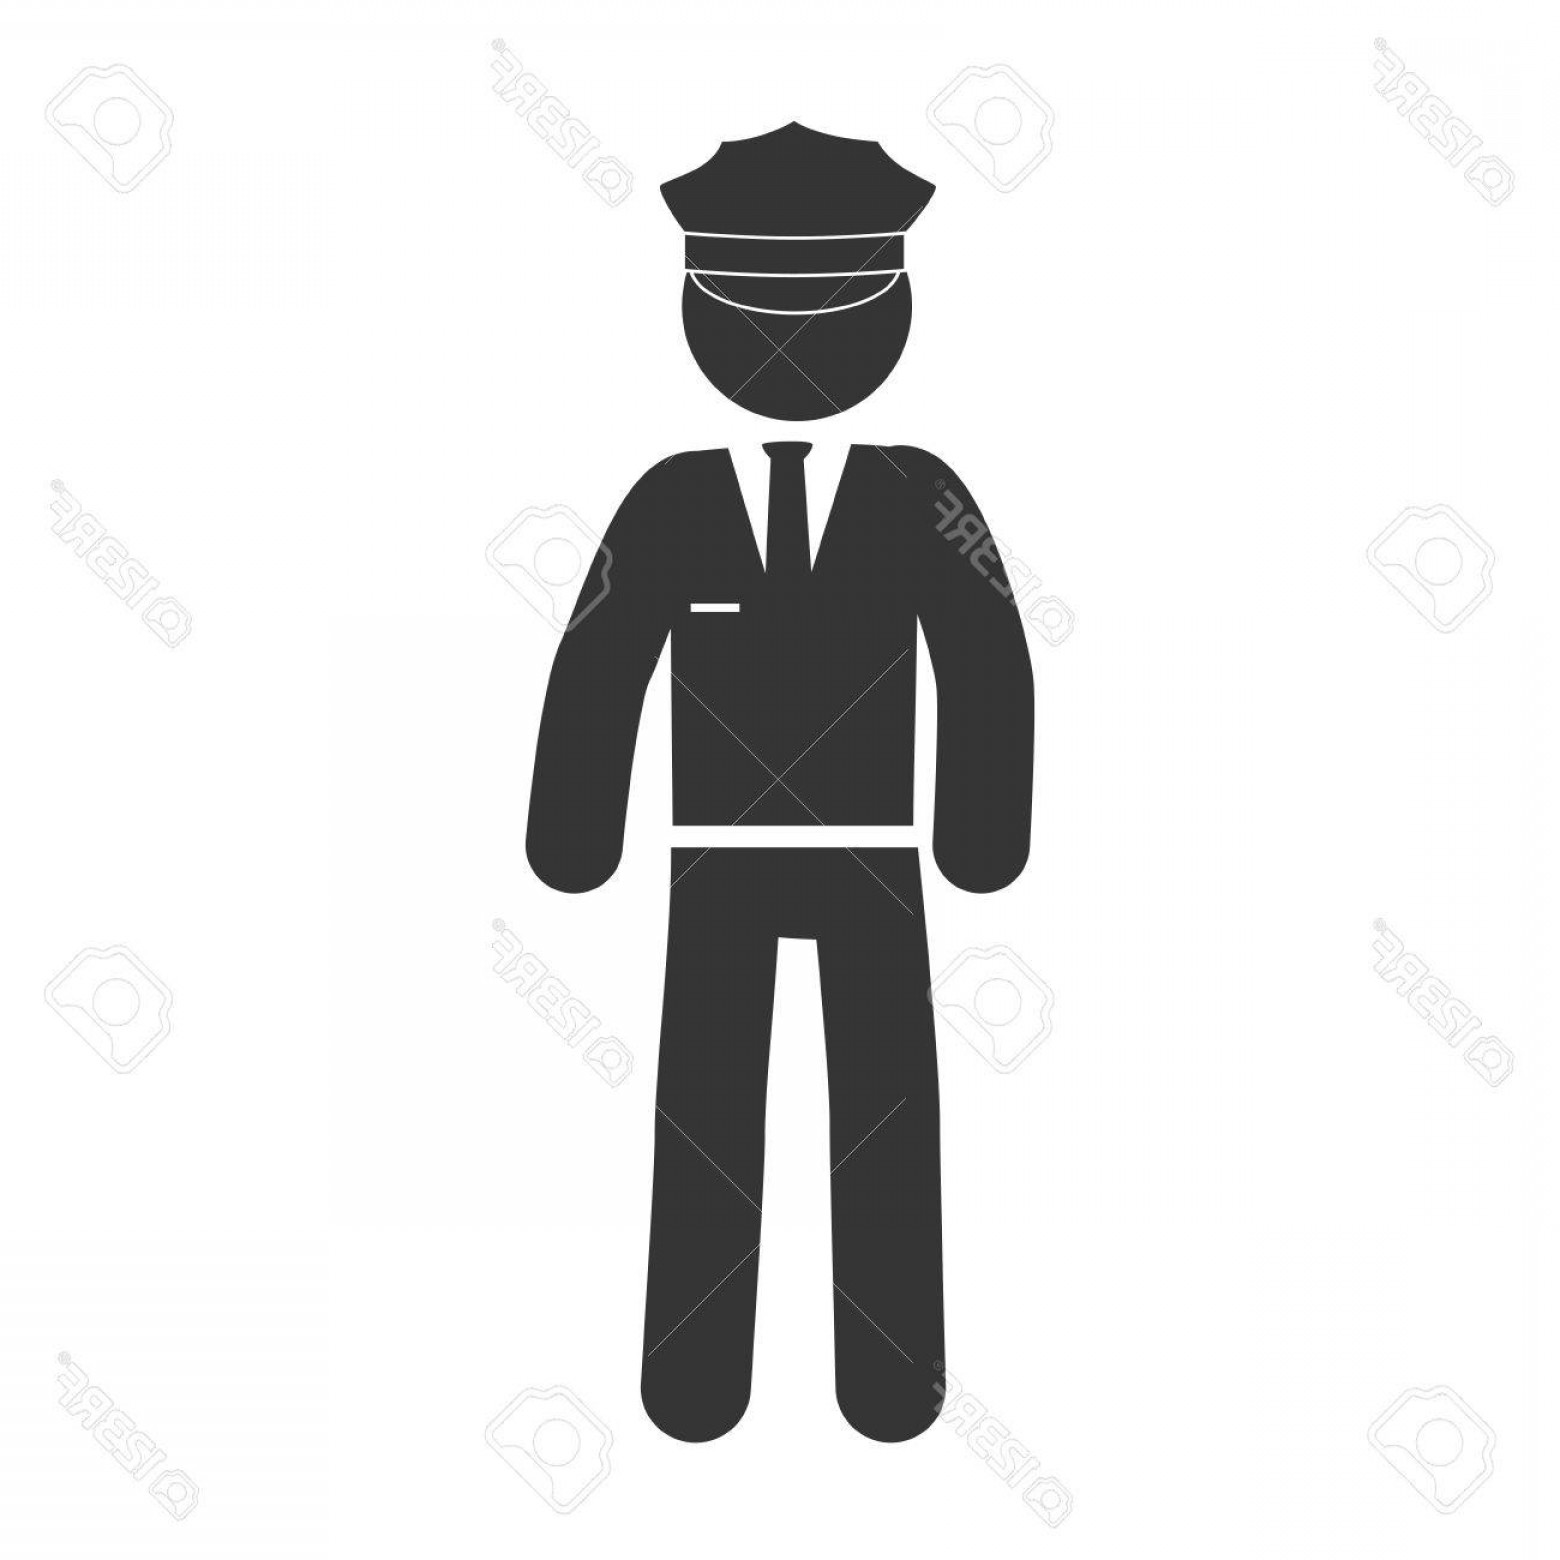 Chauffer Driver Cap Vector: Photostock Vector Man Chauffeur Driver Hat Suit Uniform Tie Male Vector Graphic Isolated Illustration